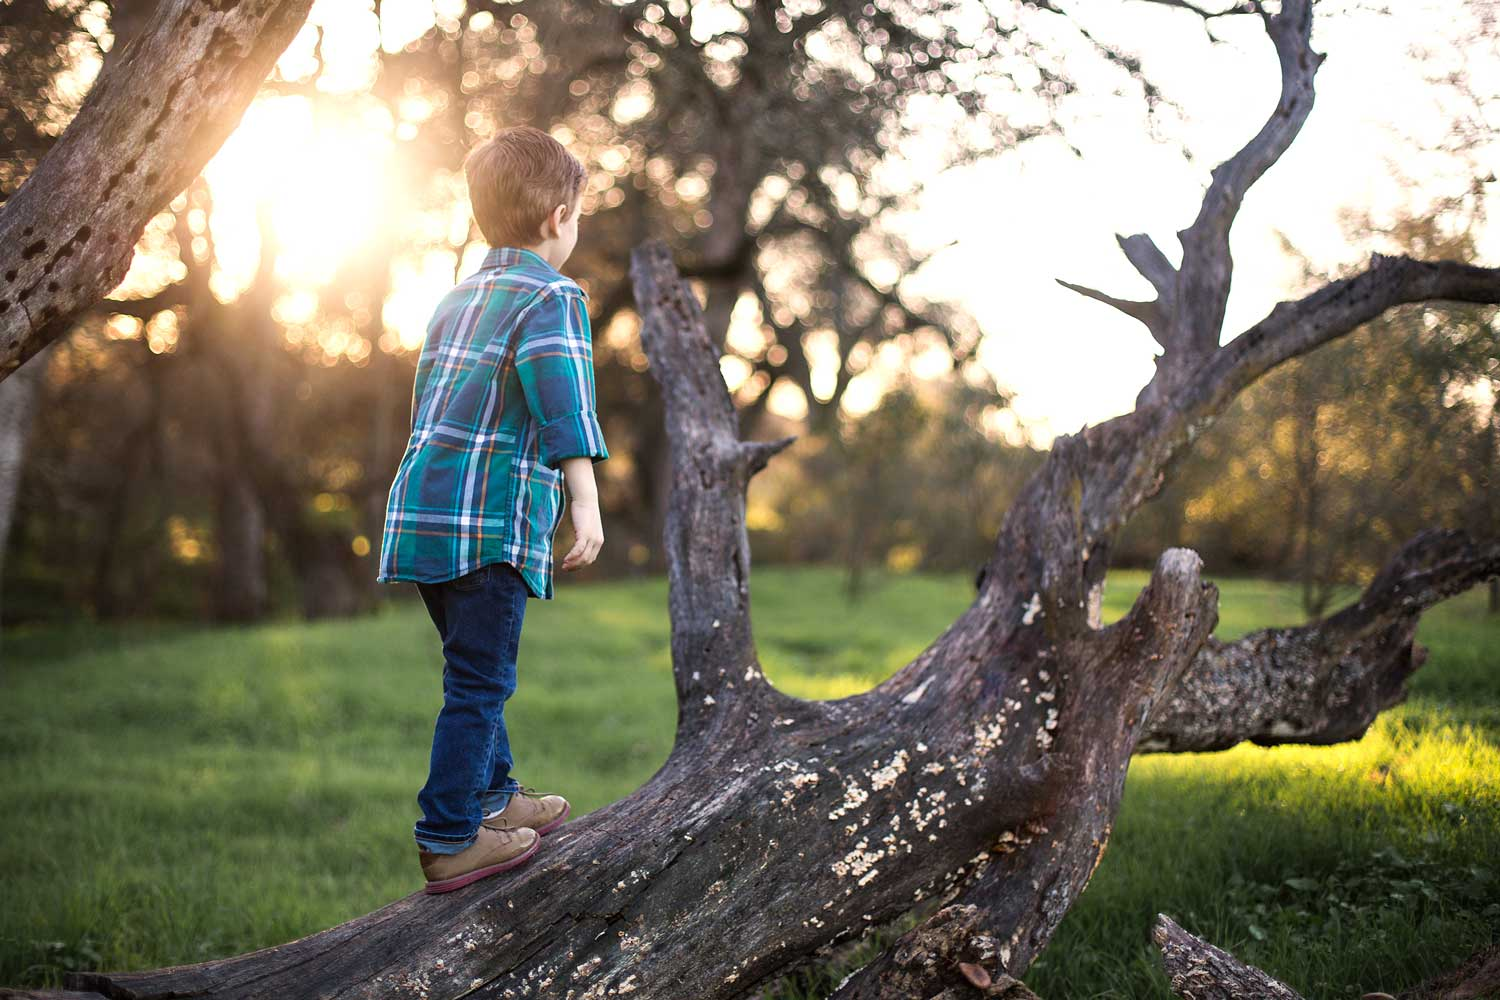 A boy climbs on a tree during a photoshoot in Roseville, California.